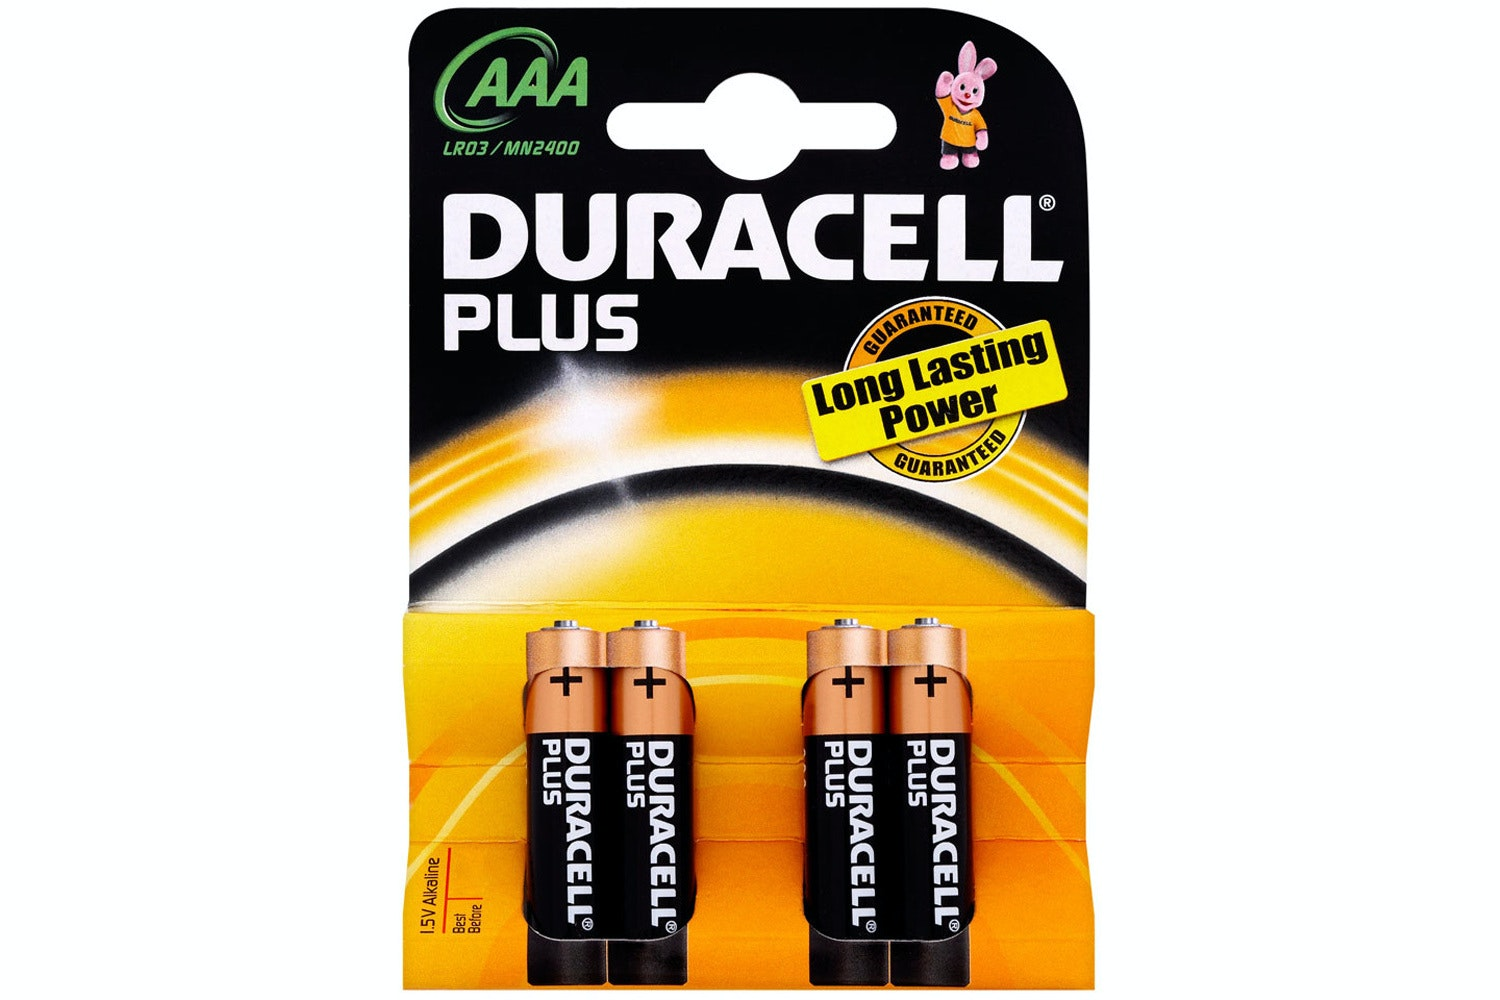 Duracell Plus AAA Batteries | 4 Pack